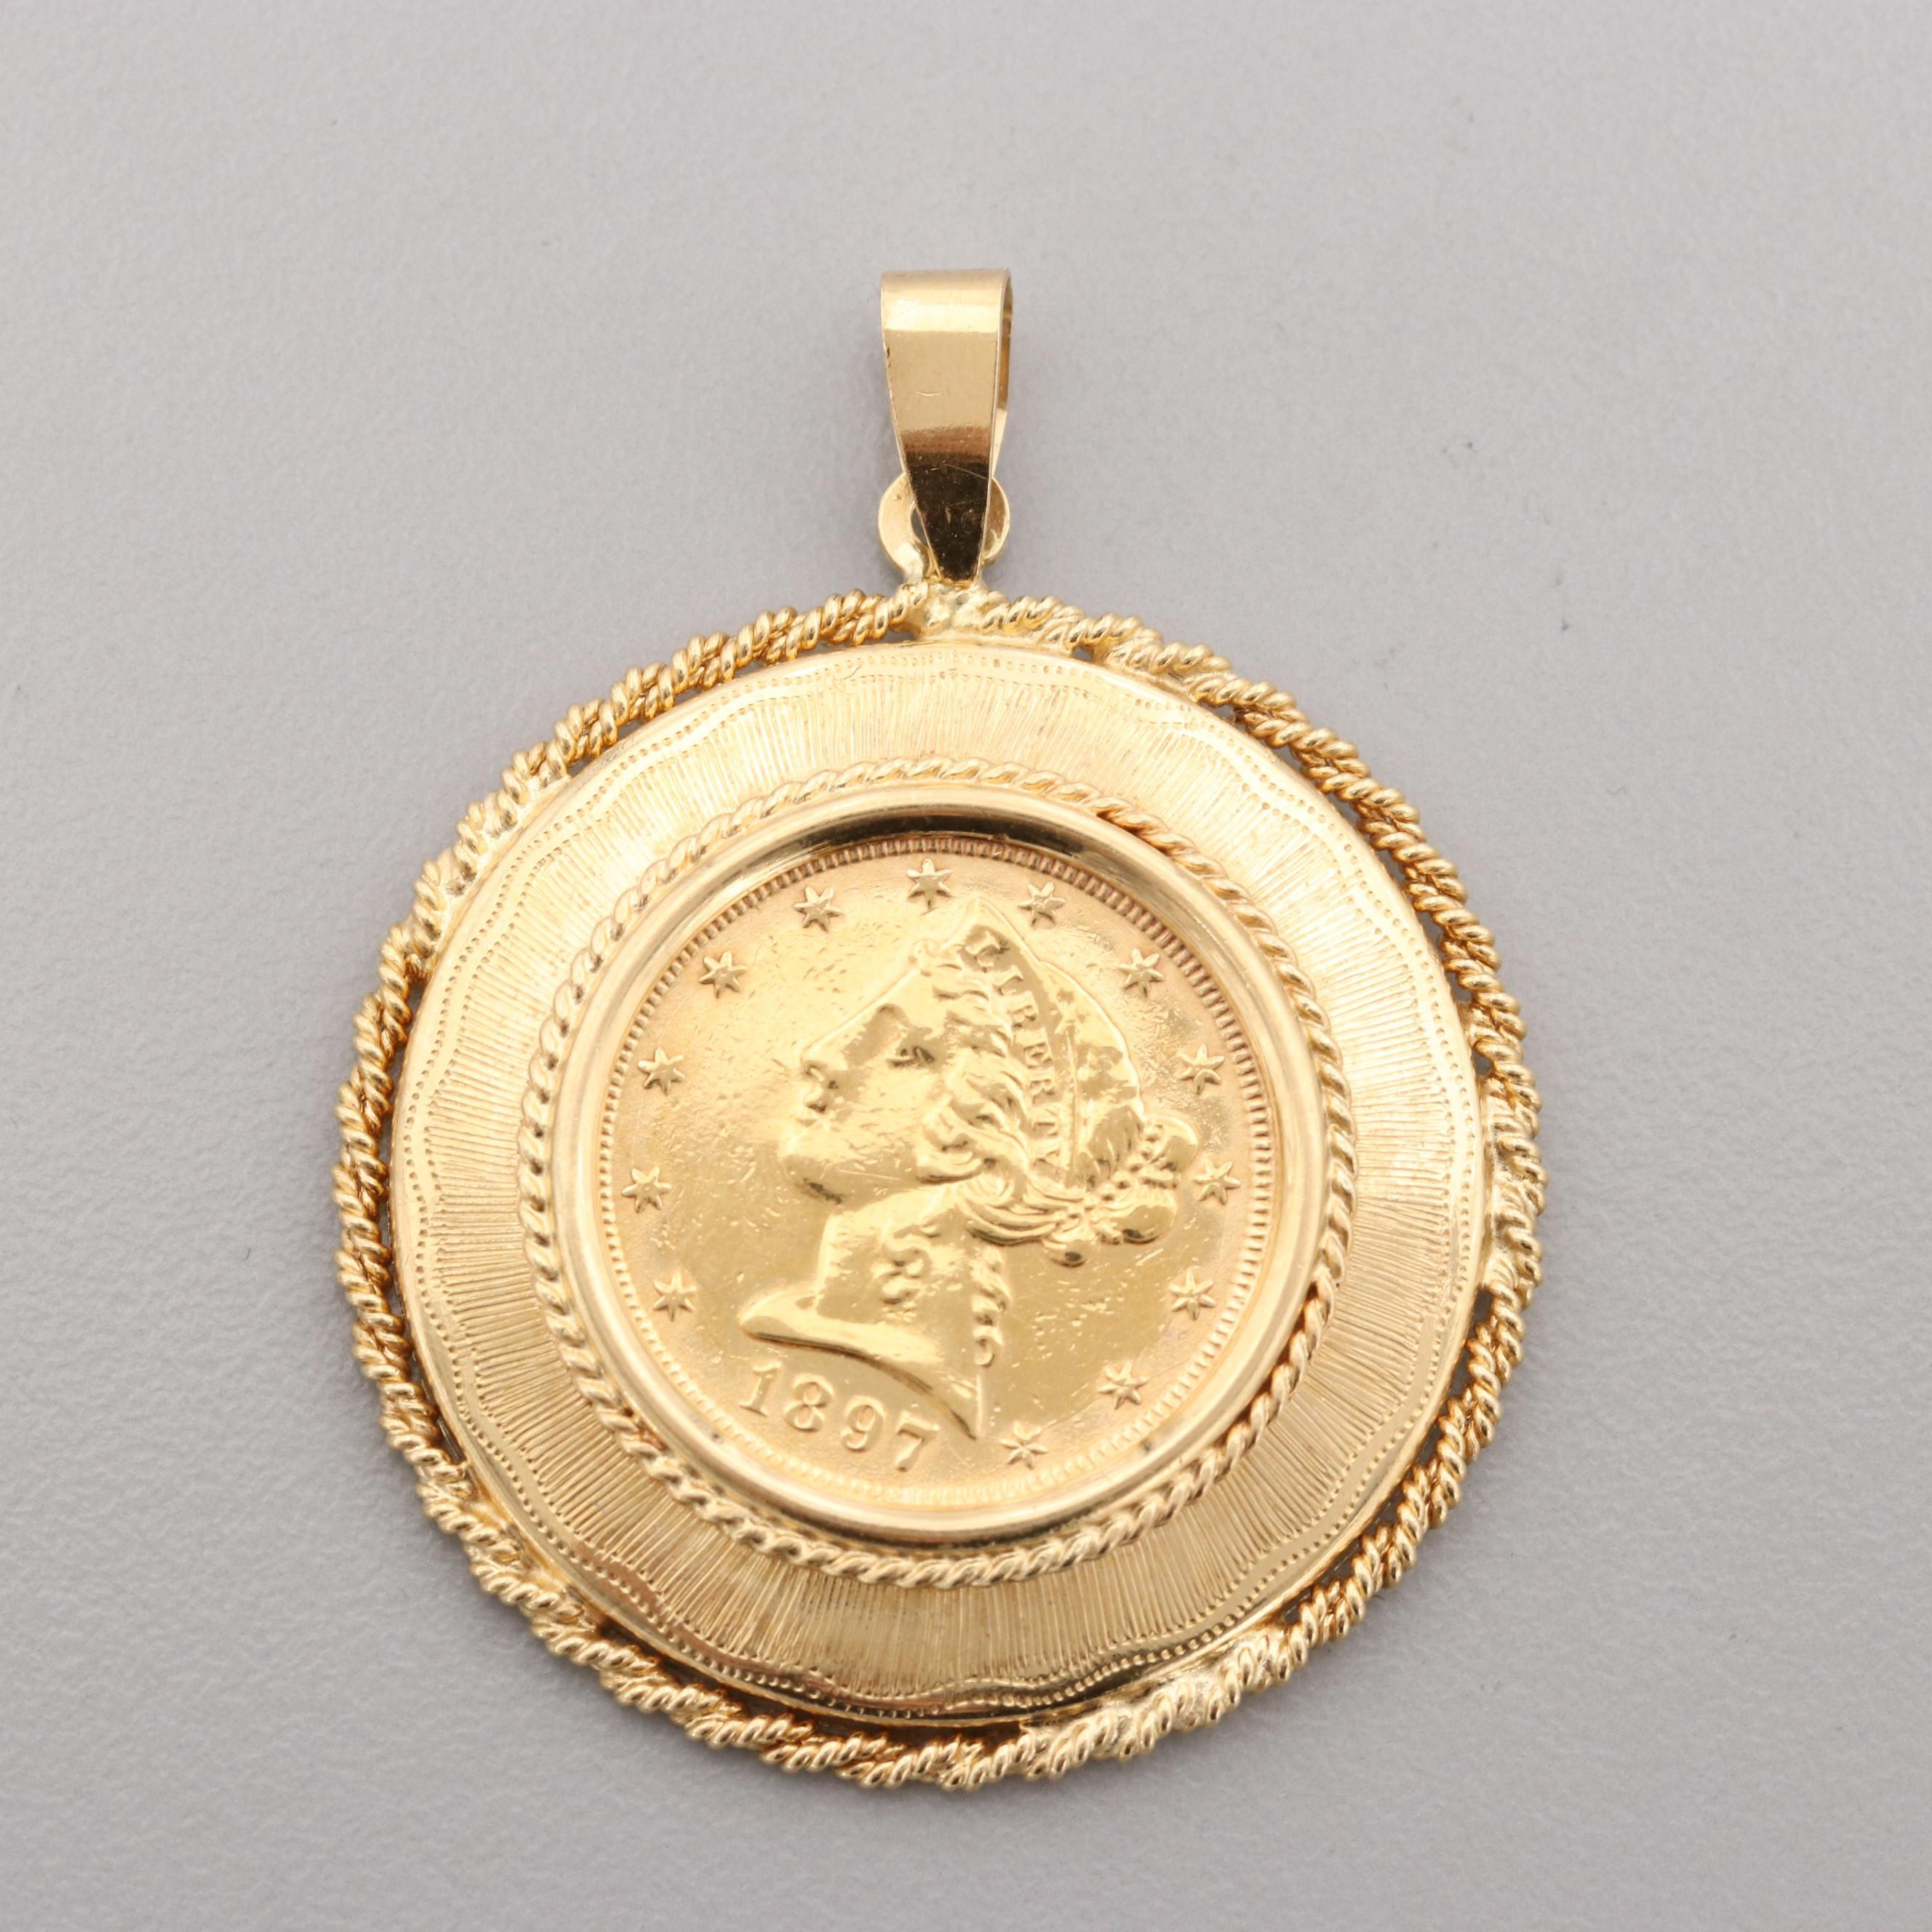 18K Yellow Gold Pendant with 1897 Liberty Head $5 Half Eagle Gold Coin